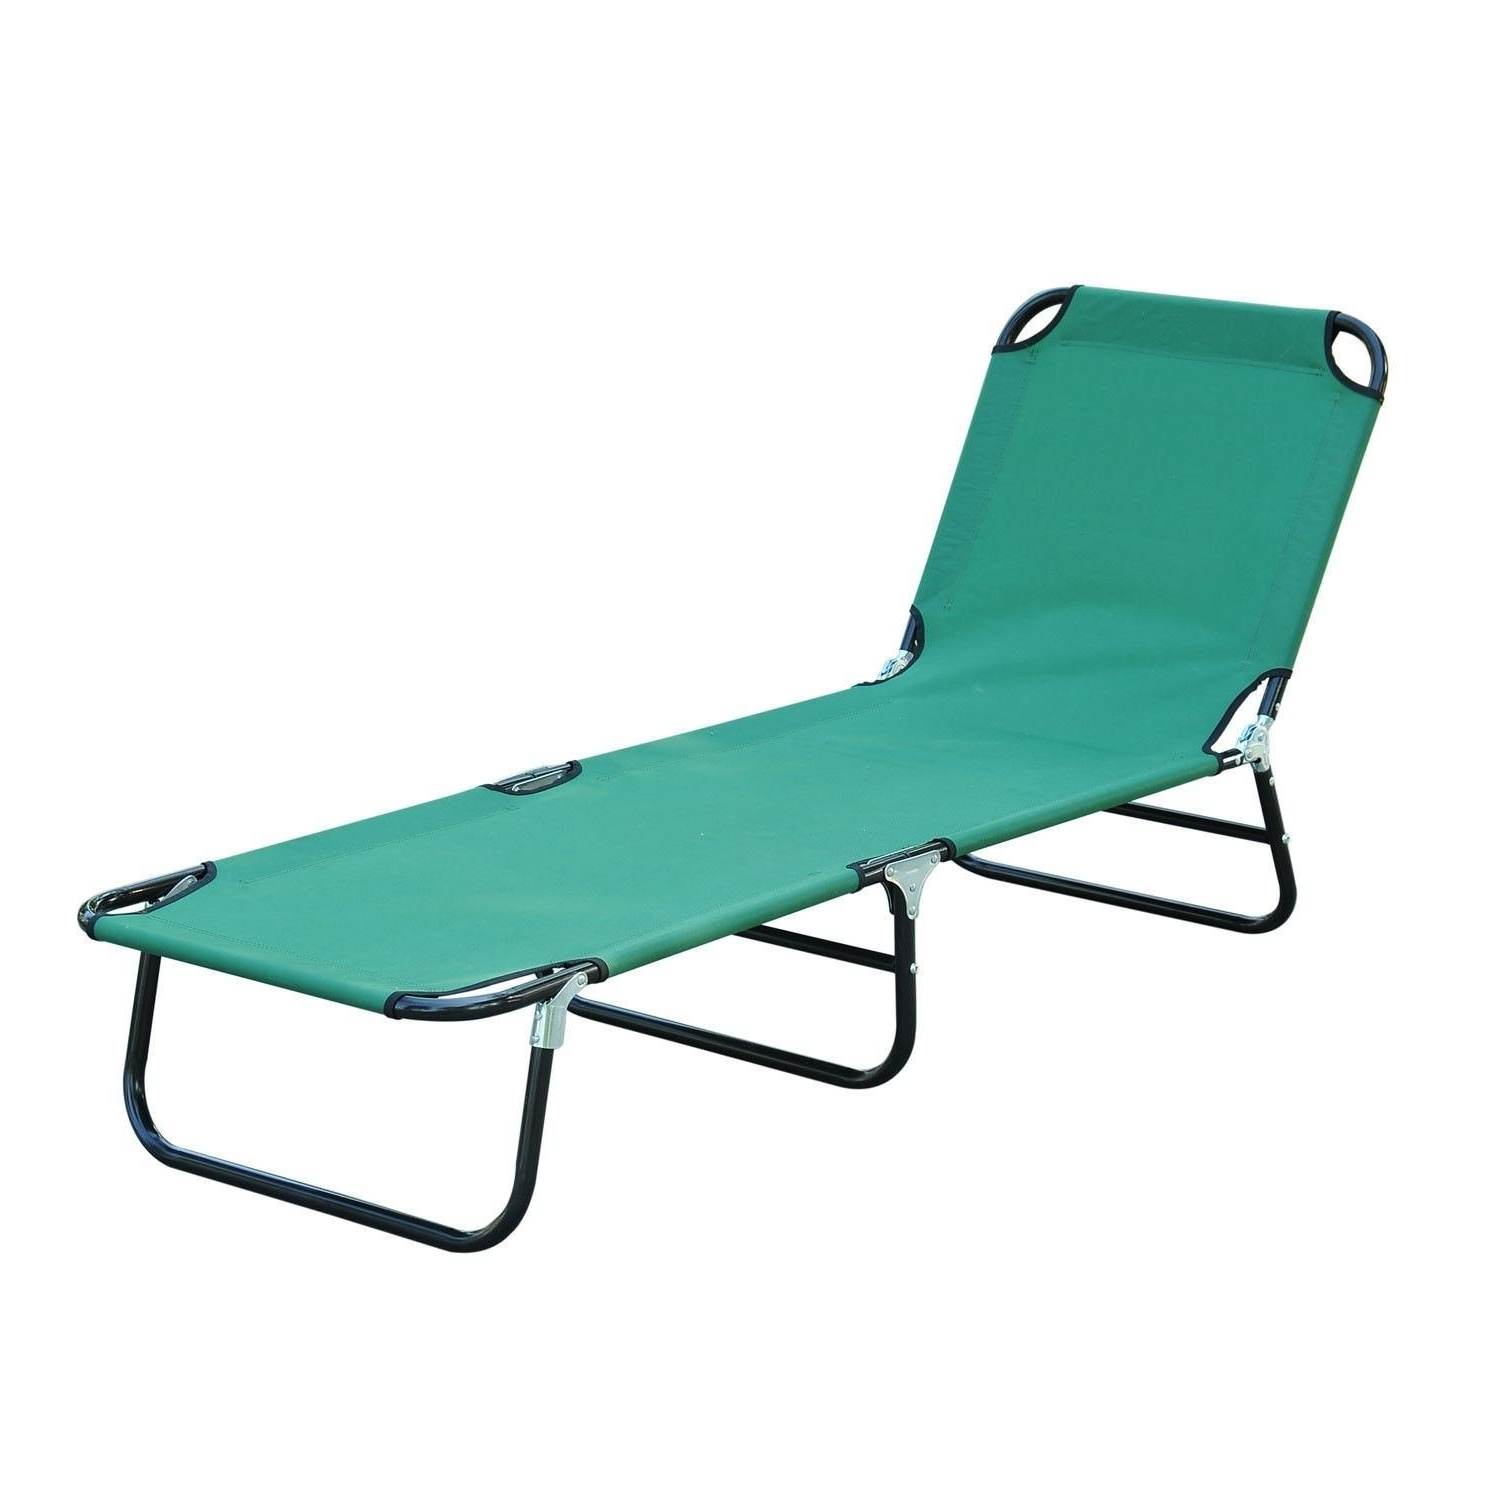 Portable Outdoor Chaise Lounge Chairs Pertaining To Most Recently Released Amazon : Outdoor Sun Chaise Lounge Recliner Patio Camping Cot (View 12 of 15)